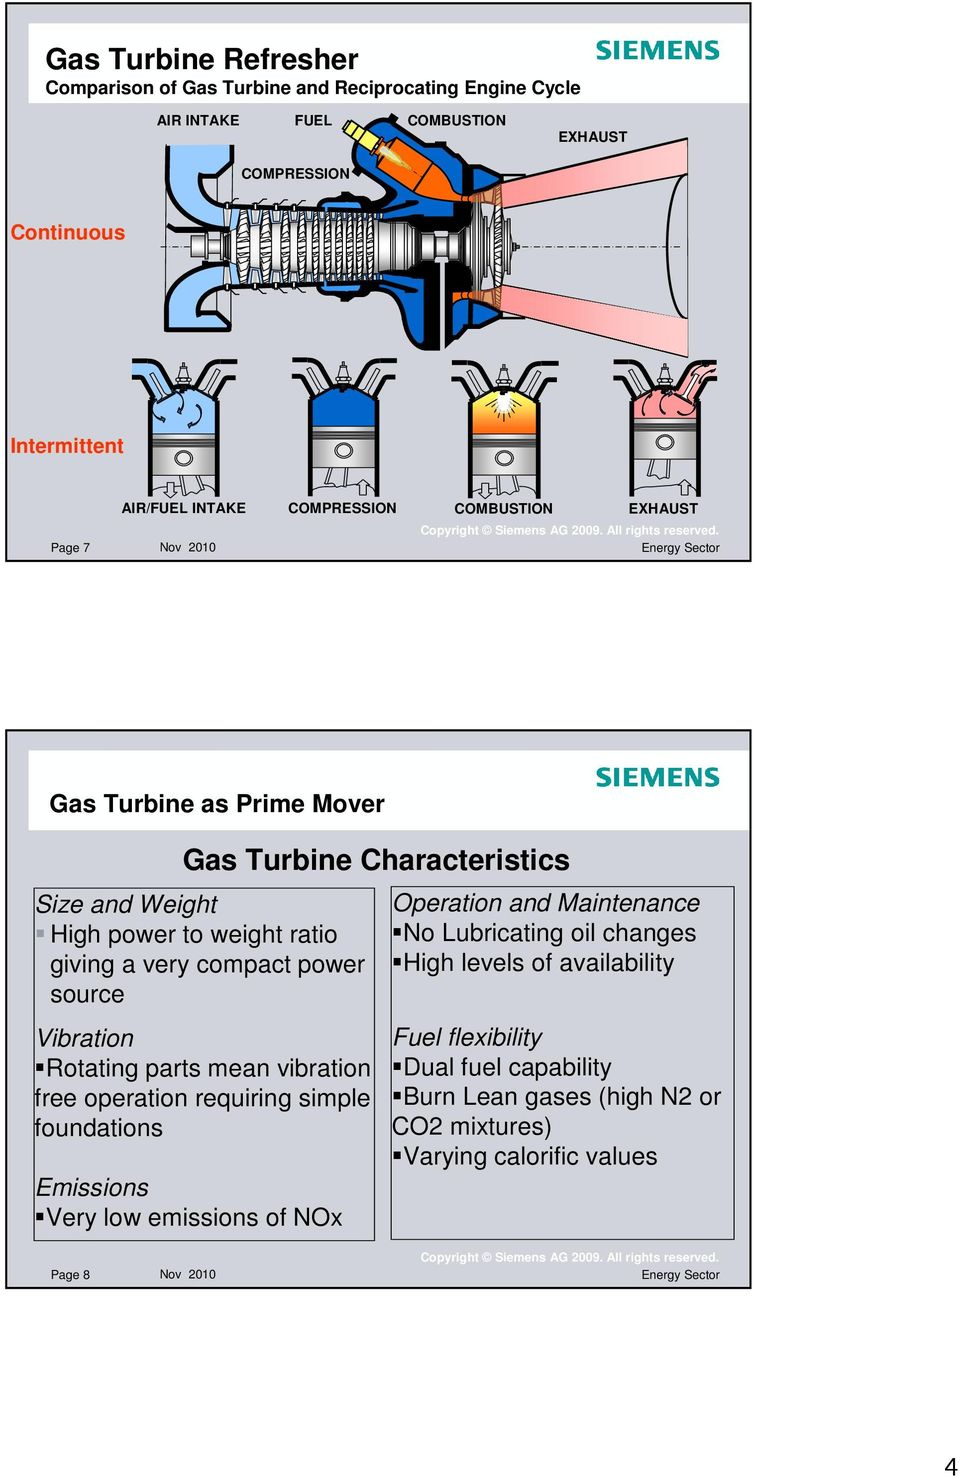 Recent Developments In Small Industrial Gas Turbines Pdf Simple Internal Combustion Engine Diagram Compact Power Source Vibration Rotating Parts Mean Free Operation Requiring Foundations Emissions Very Low